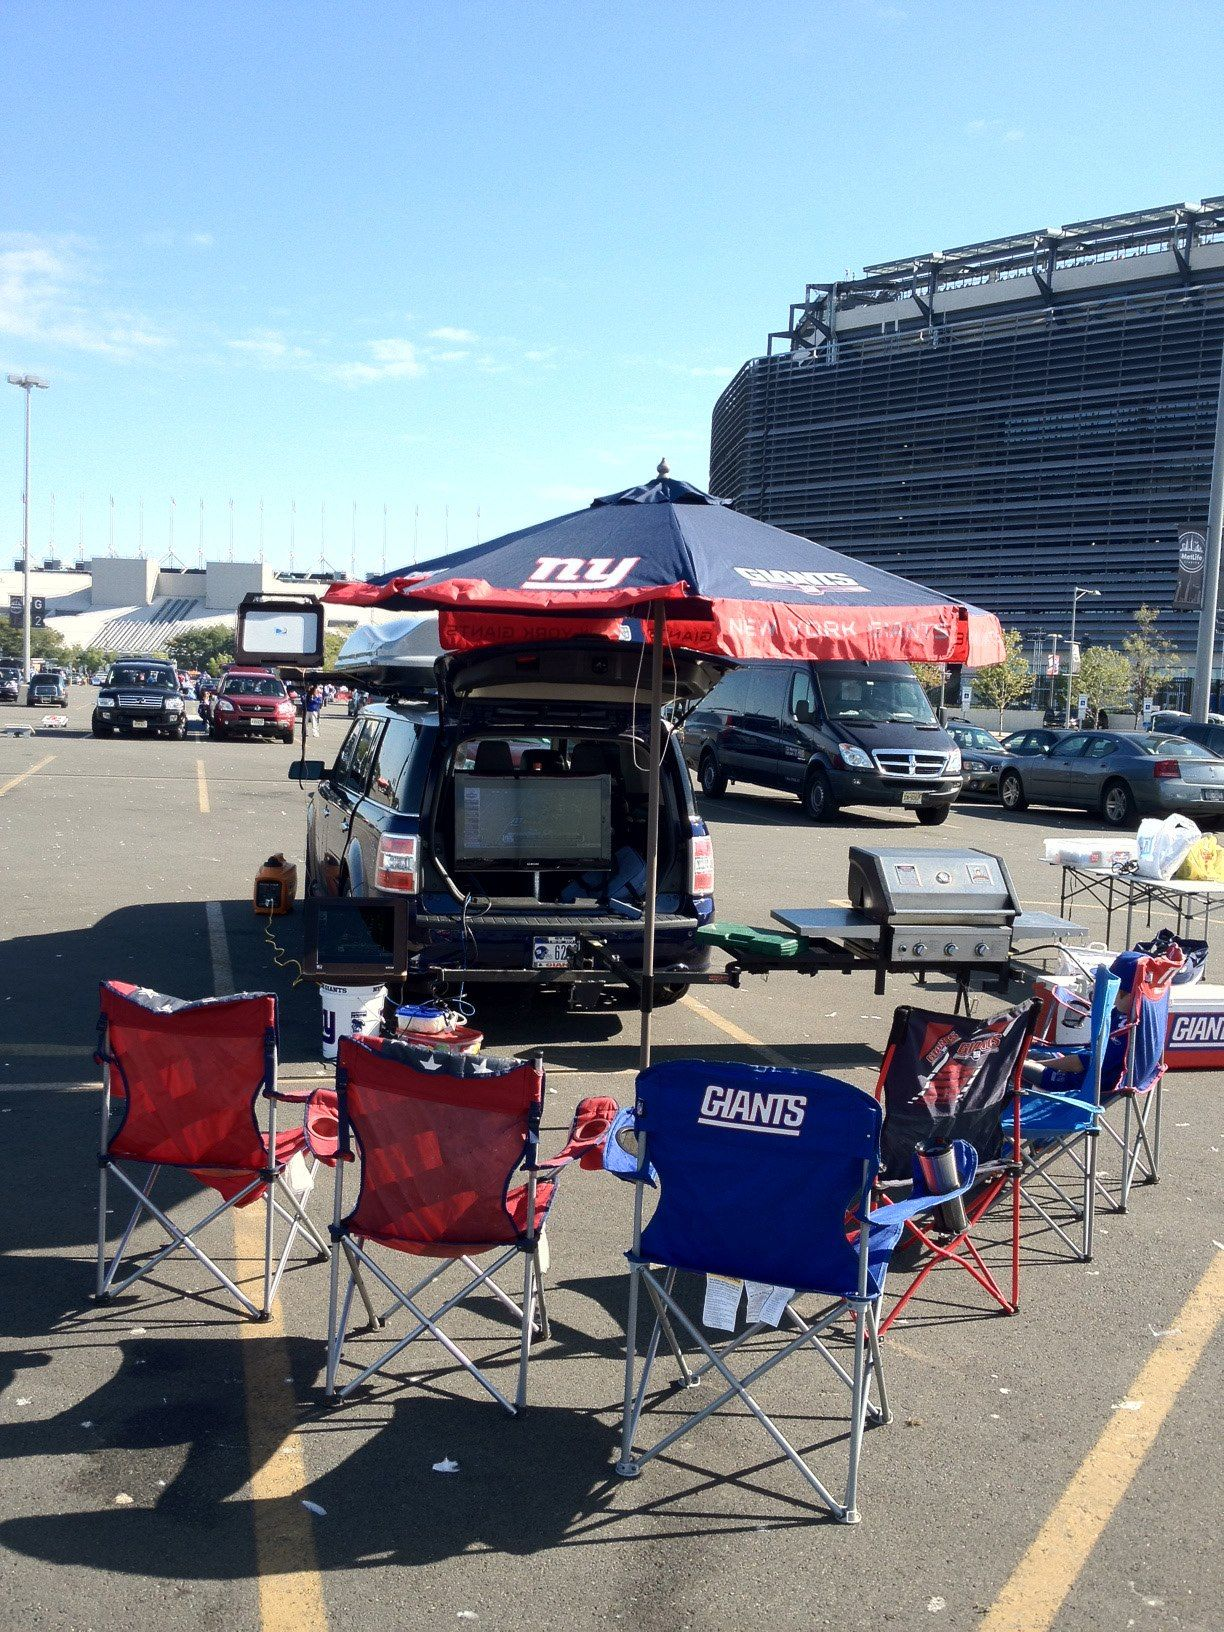 From Steve W Calm before the tailgate no people but an elegant